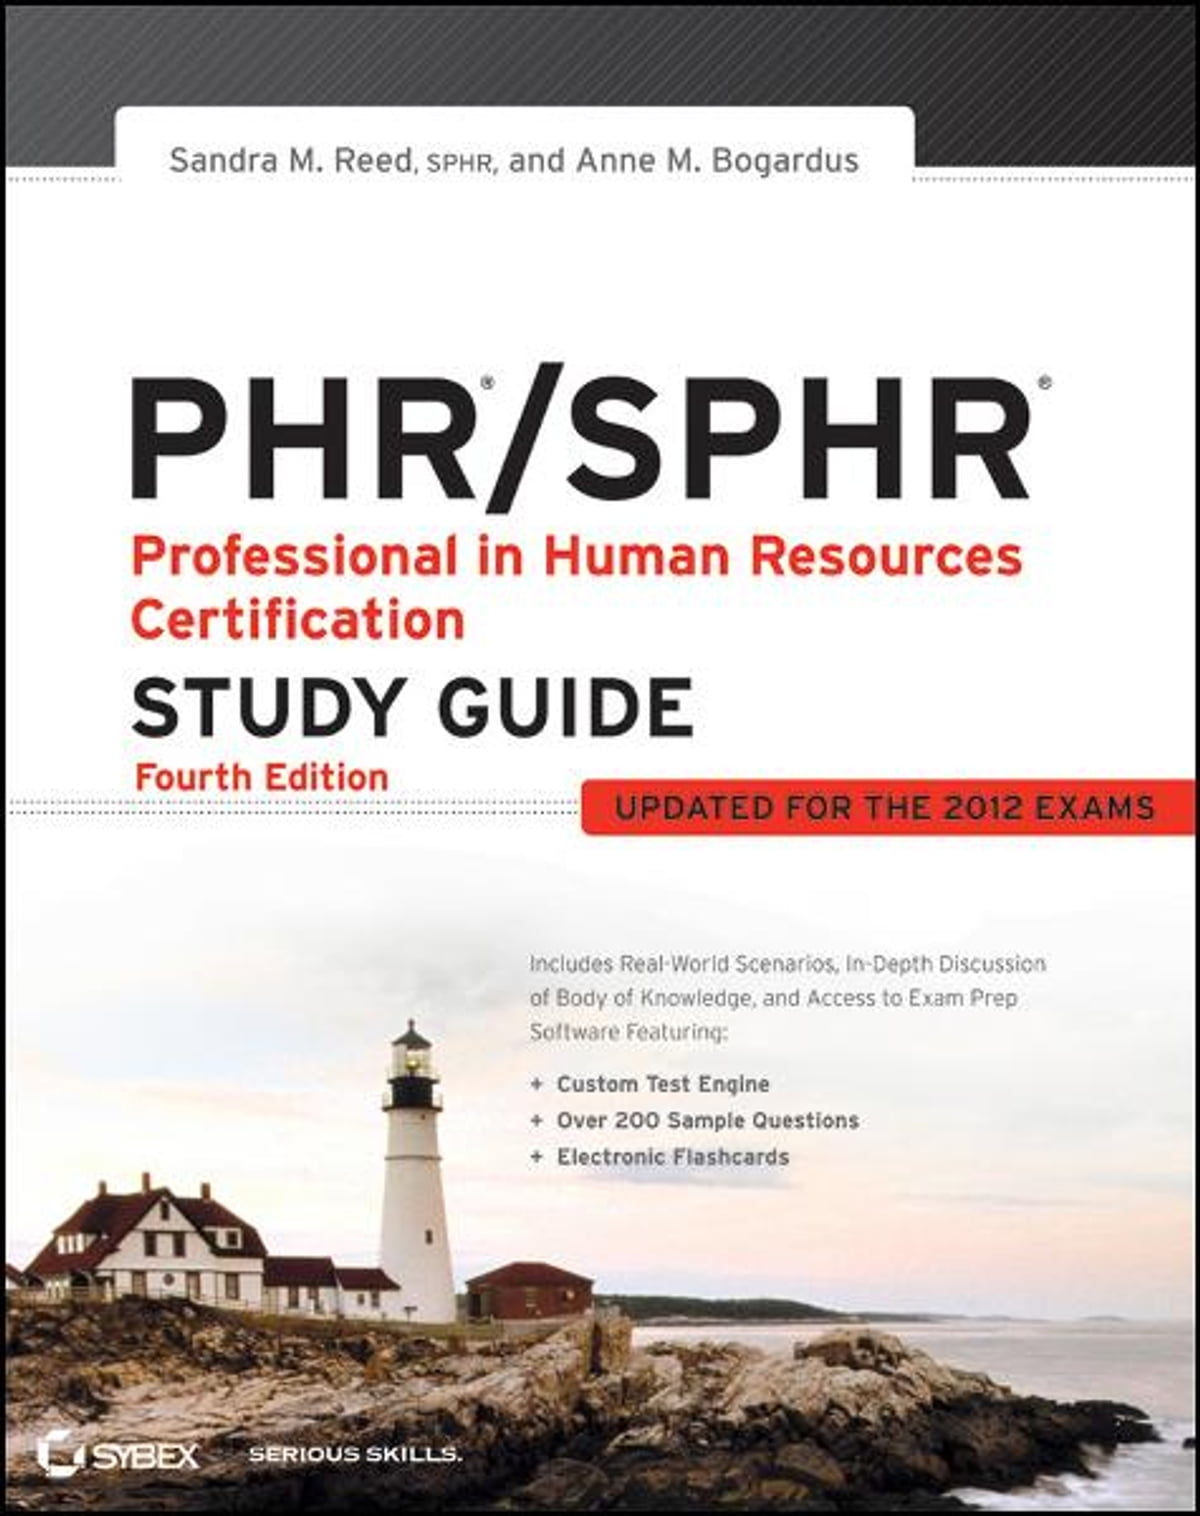 Phr sphr professional in human resources certification study phr sphr professional in human resources certification study guide ebook by sandra m reed 9781118331699 rakuten kobo xflitez Images